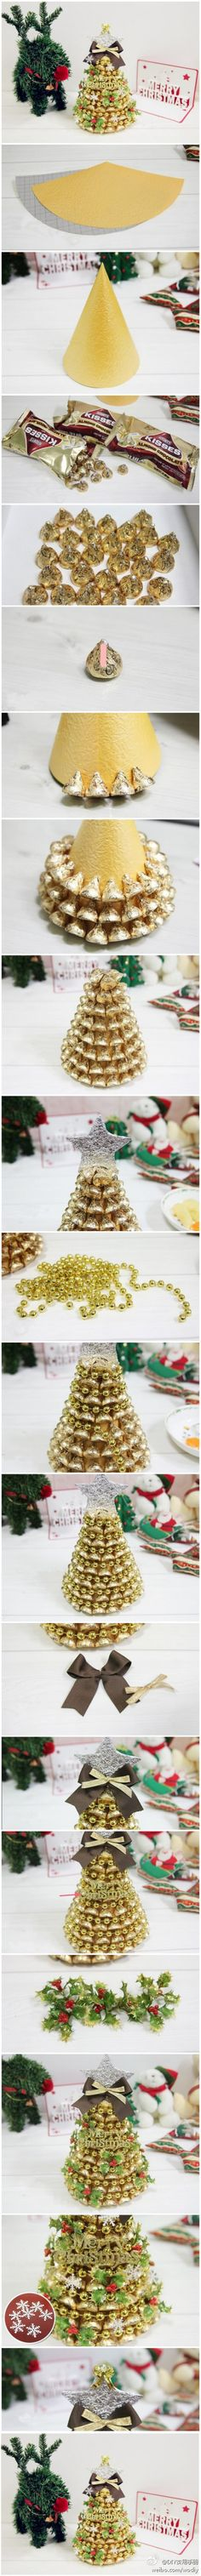 Christmas Tree Idea ~ These would make great gifts!